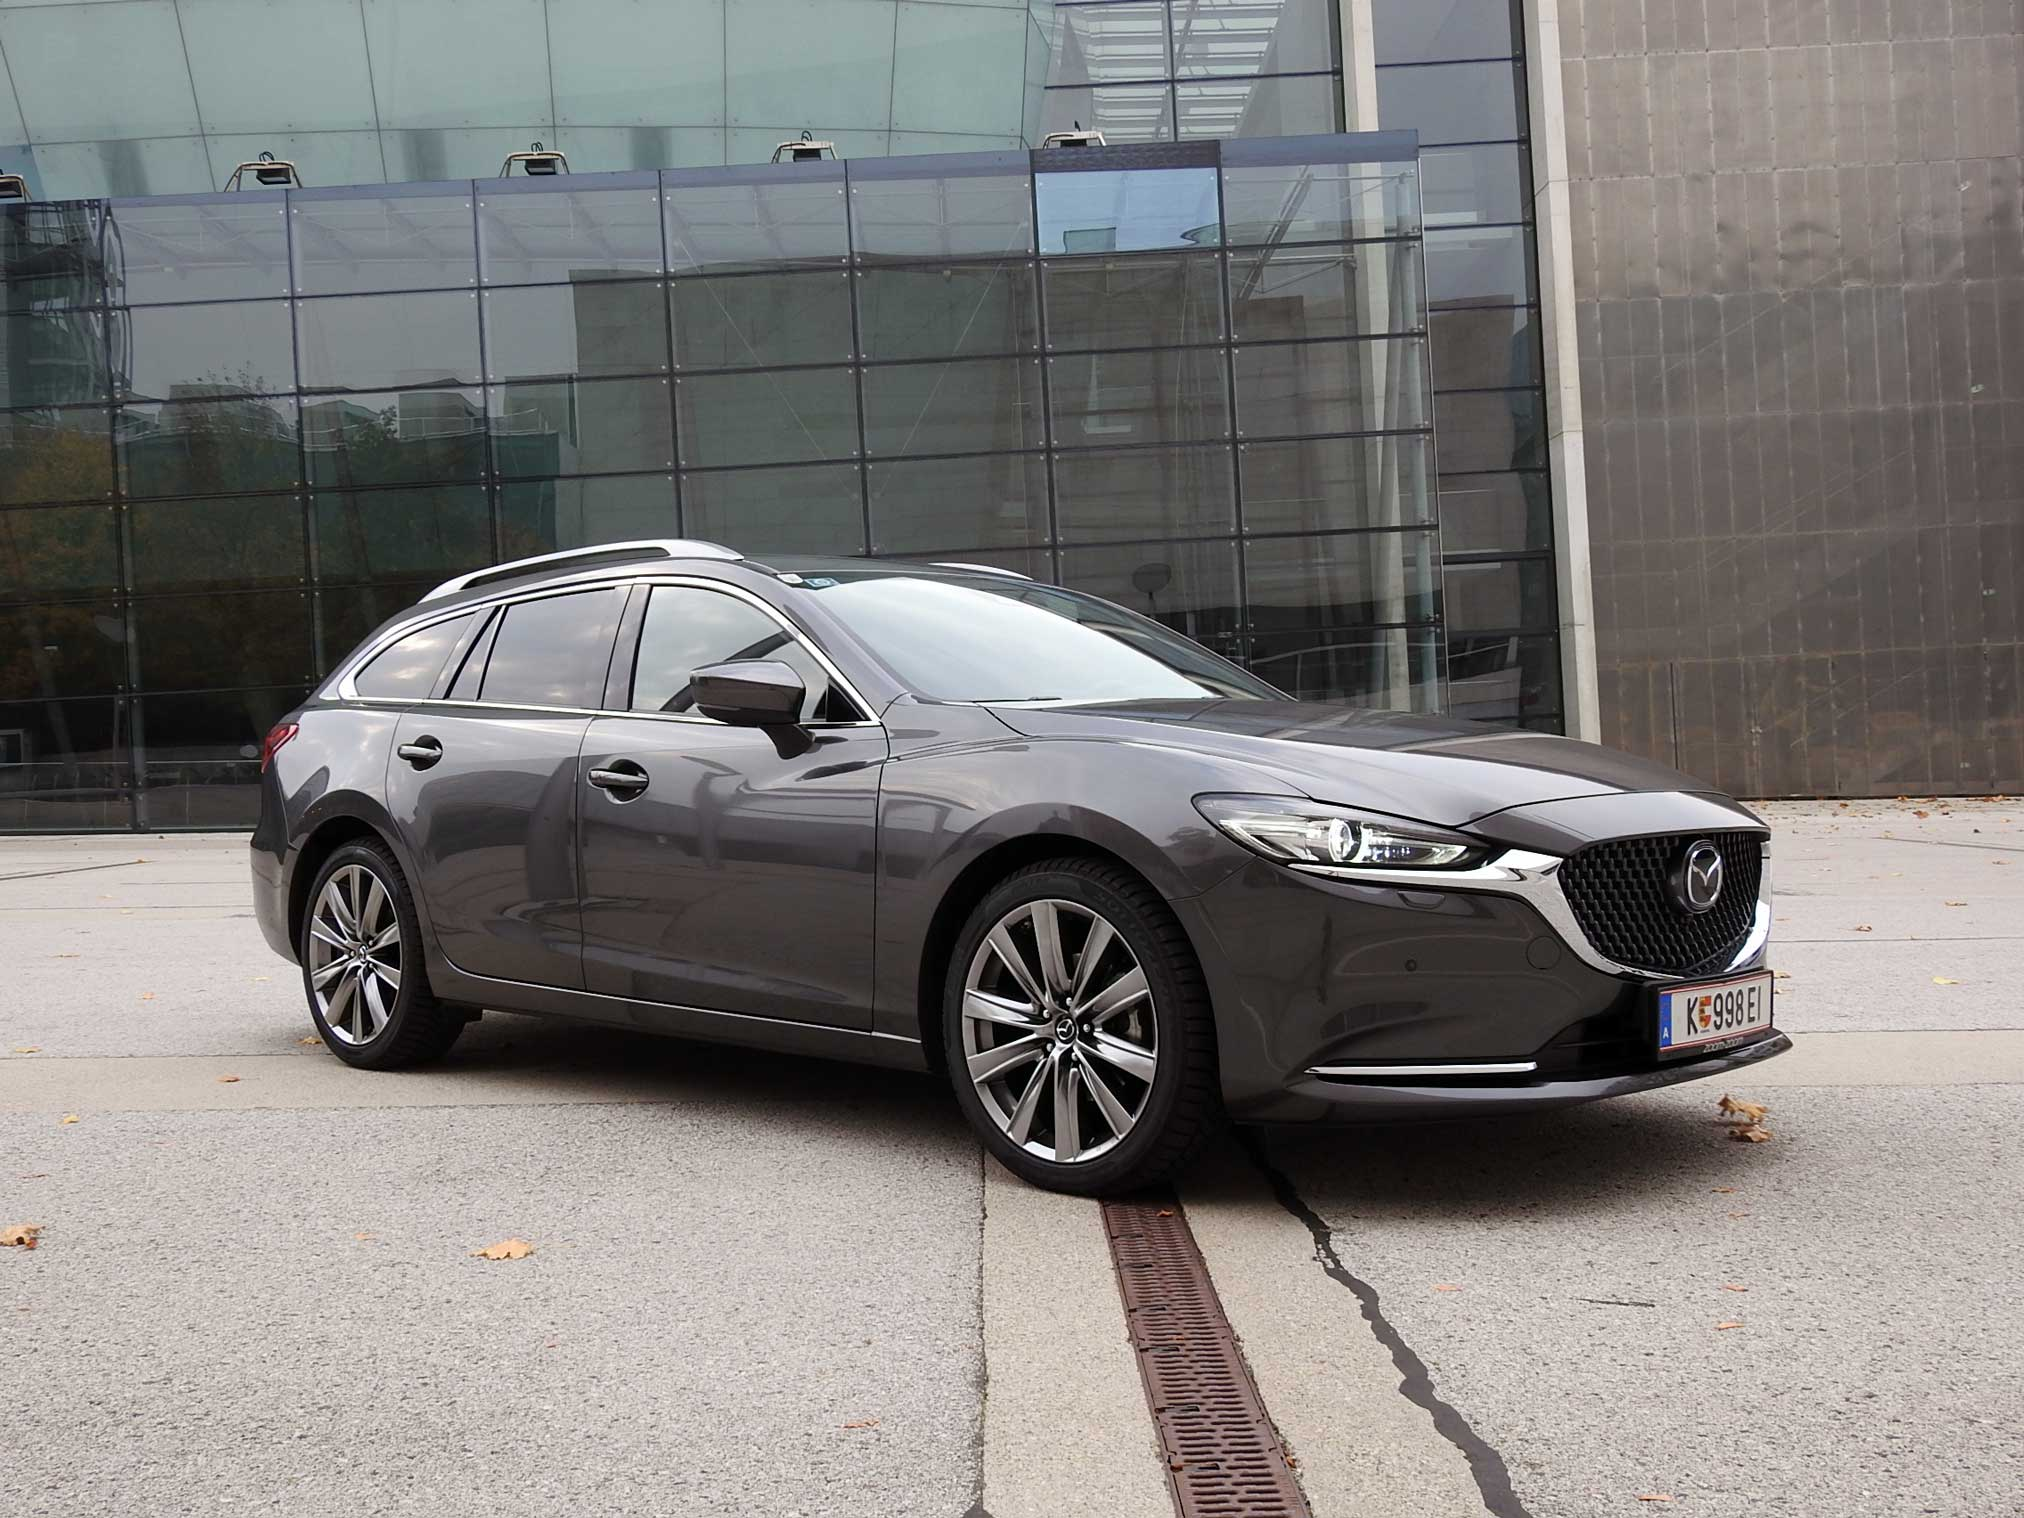 eleganter sport combi der neue mazda 6 im test guten. Black Bedroom Furniture Sets. Home Design Ideas